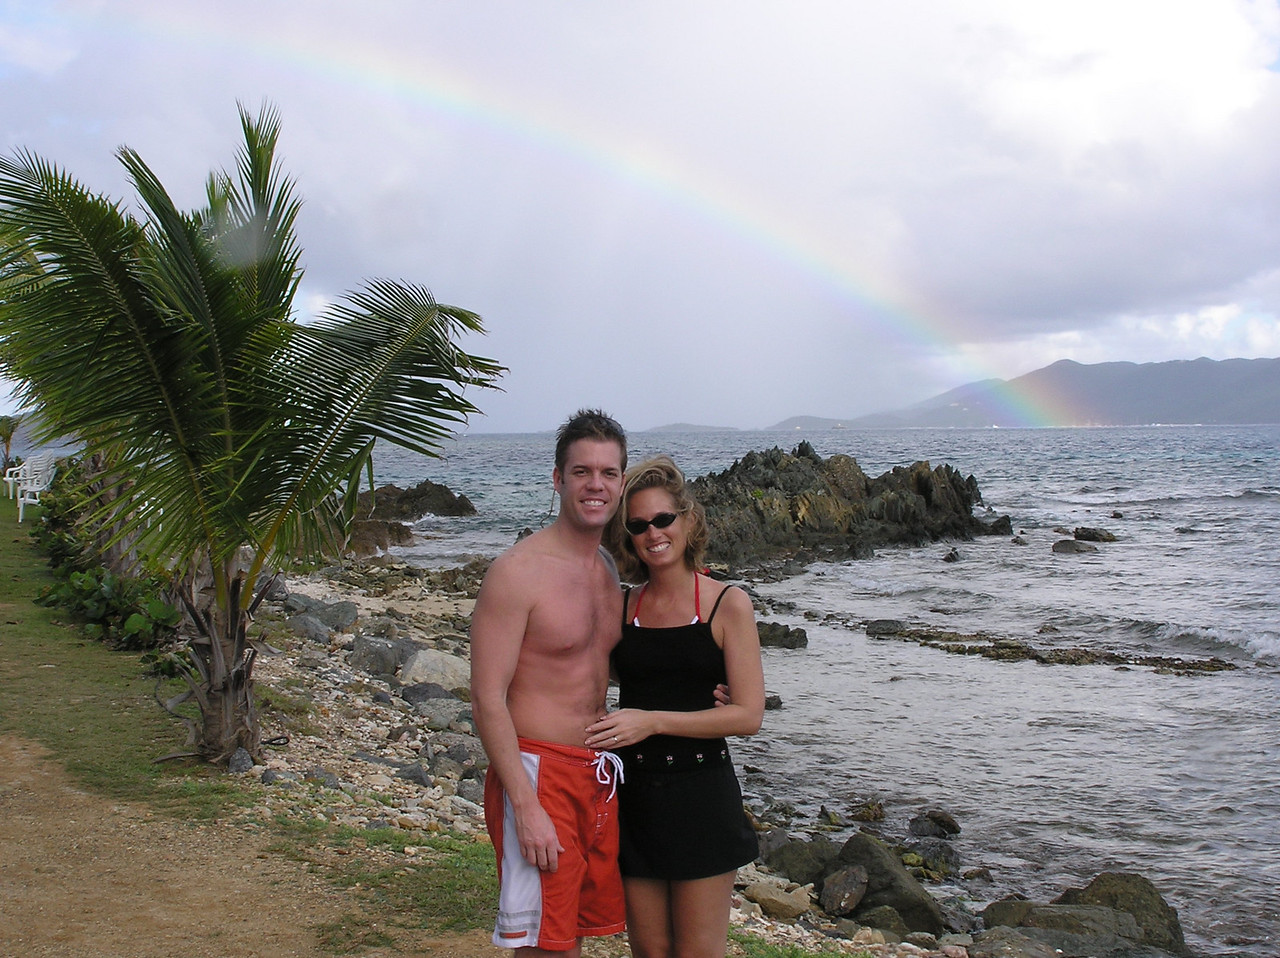 First day of our honeymoon and we get a rainbow...gotta be a good sign!